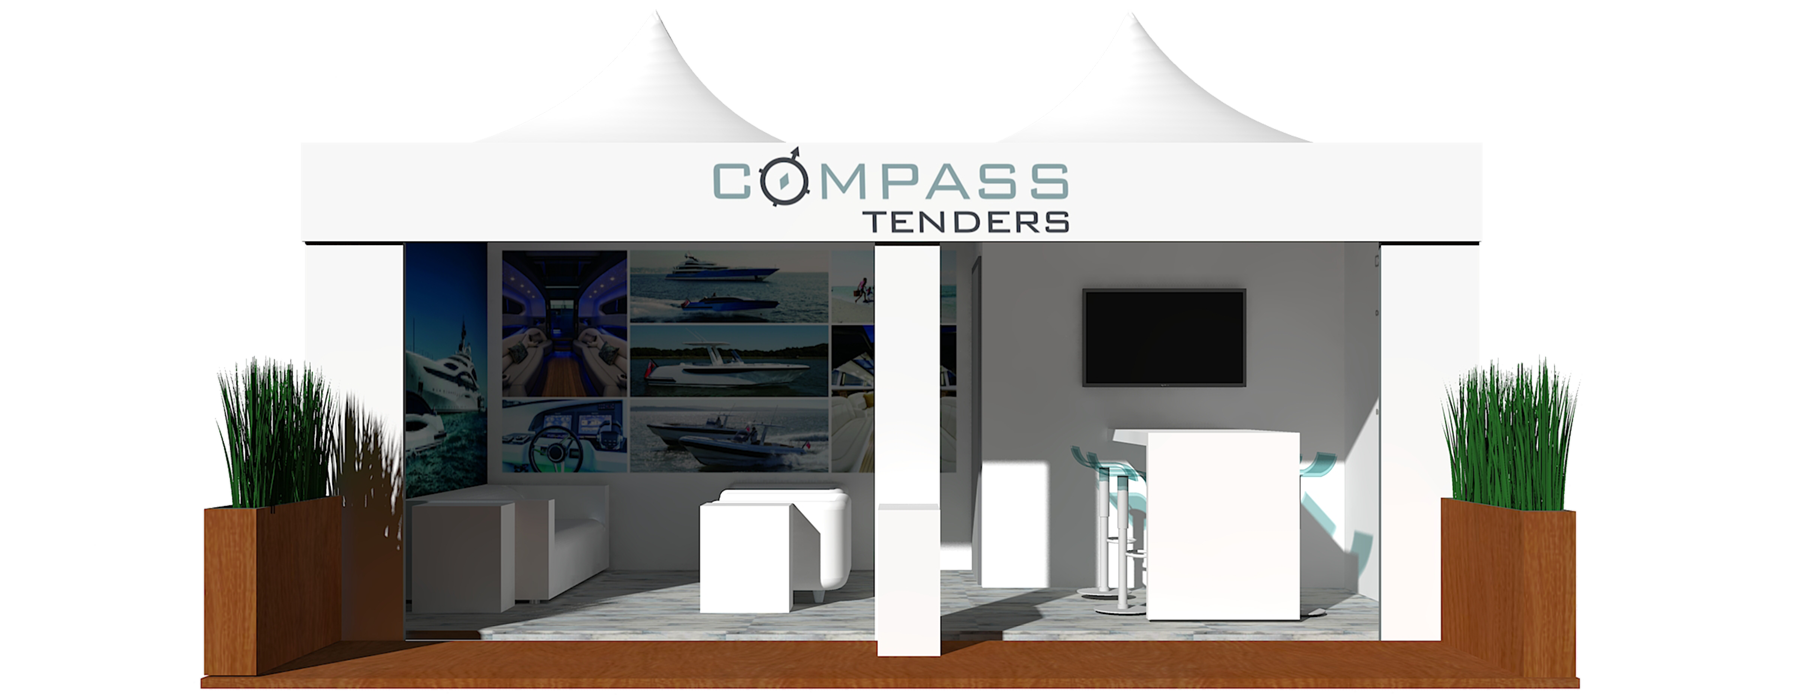 Exhibition Stand Tenders : Stand for compass tenders on the monaco yacht show 2017 superyacht